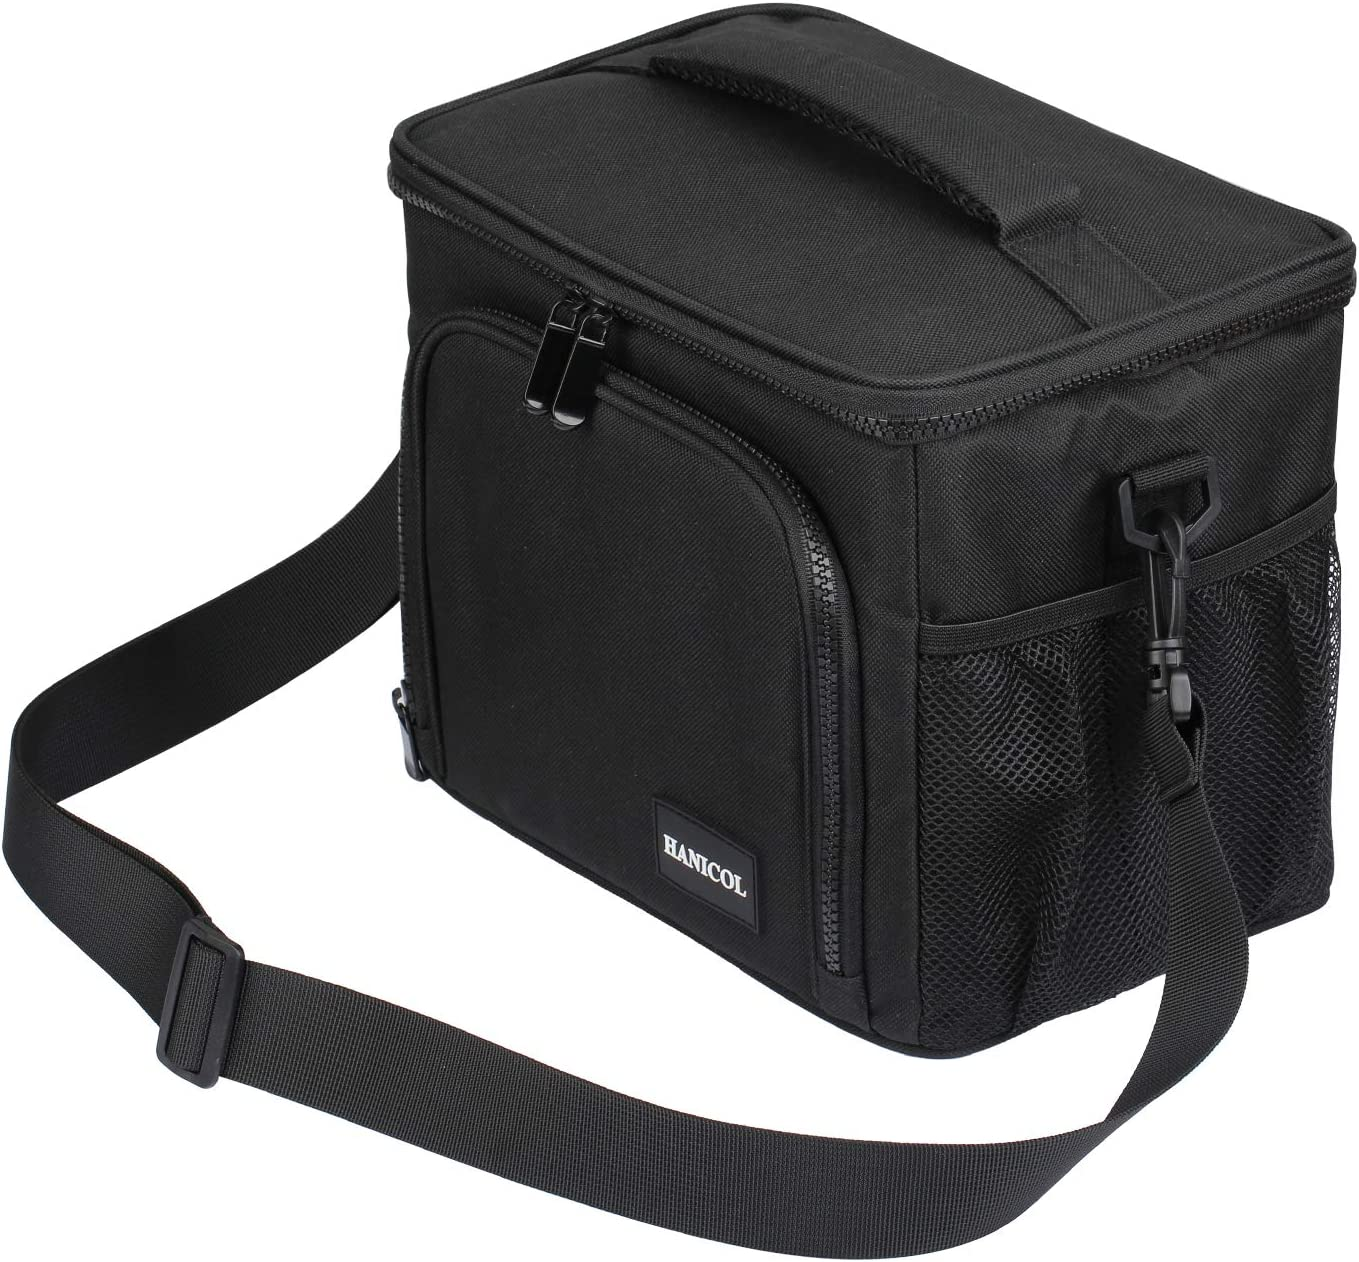 US Adult Lunch Box Insulated Lunch Bags Large Cooler Tote Bag for Men Women Kids